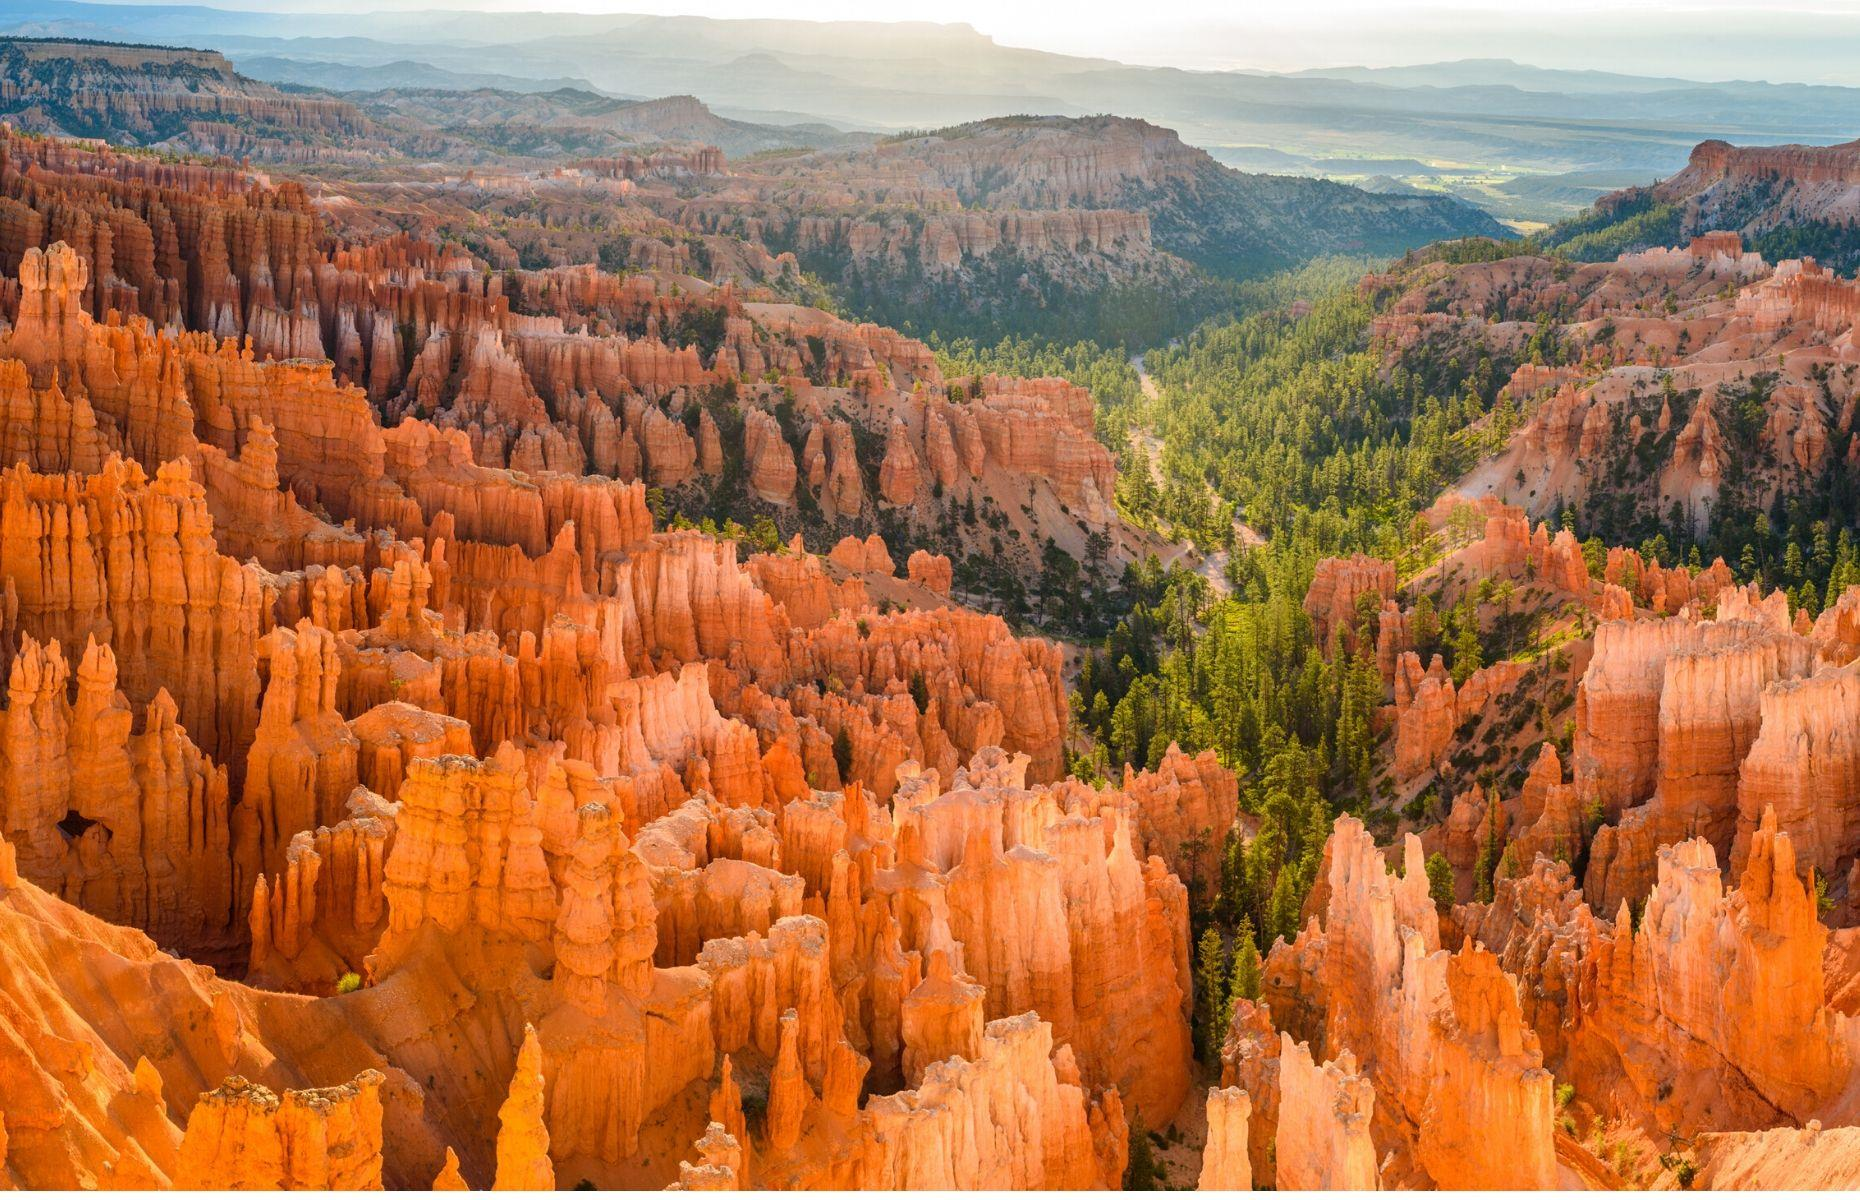 Slide 26 of 59: A demonstration of the power and beauty of nature, Bryce Canyon National Park is characterized by its crimson rock spires. Dynamic and distinctive, this canyon in Utah was formed by erosion over the course of about 15 million years. The hoodoos (the column-shaped rock formations) dazzle in shades of orange and red. Adventurous hikers can witness the surreal landscape for themselves by traversing the park's trails, ancient forests and natural amphitheaters.